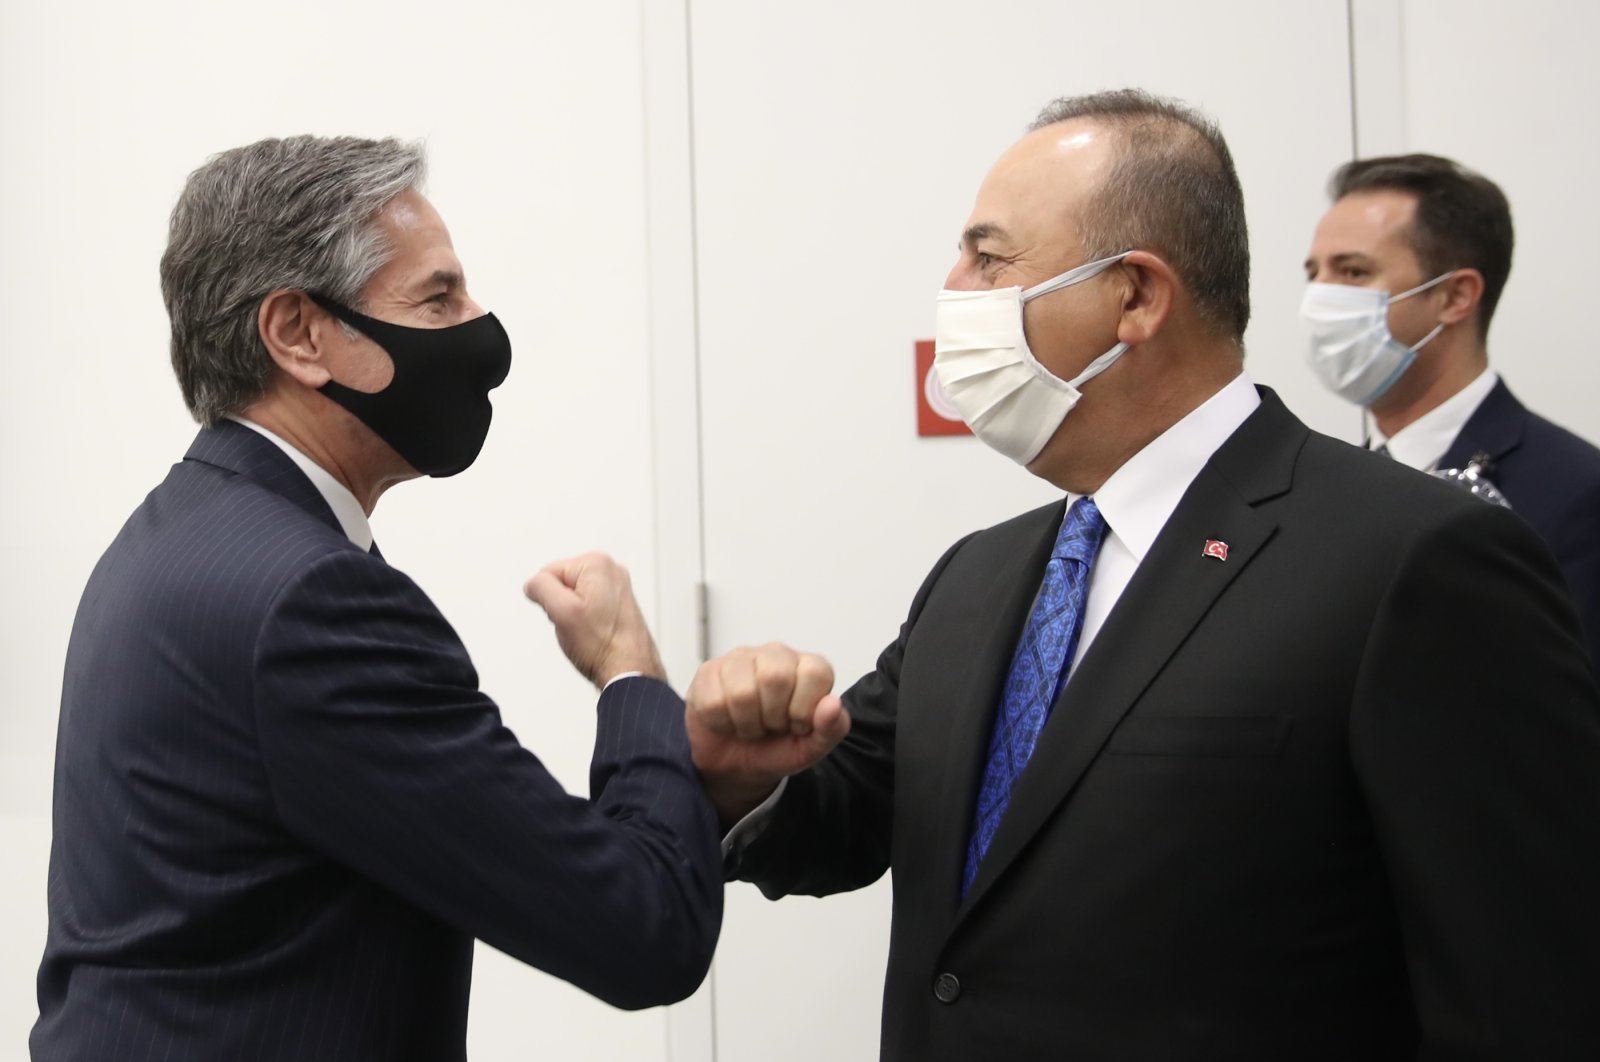 Foreign Minister Mevlüt Çavuşoğlu (R) meets U.S. Secretary of State Antony Blinken in Brussels on the sidelines of the NATO meeting, March 24, 2021. (AA Photo)